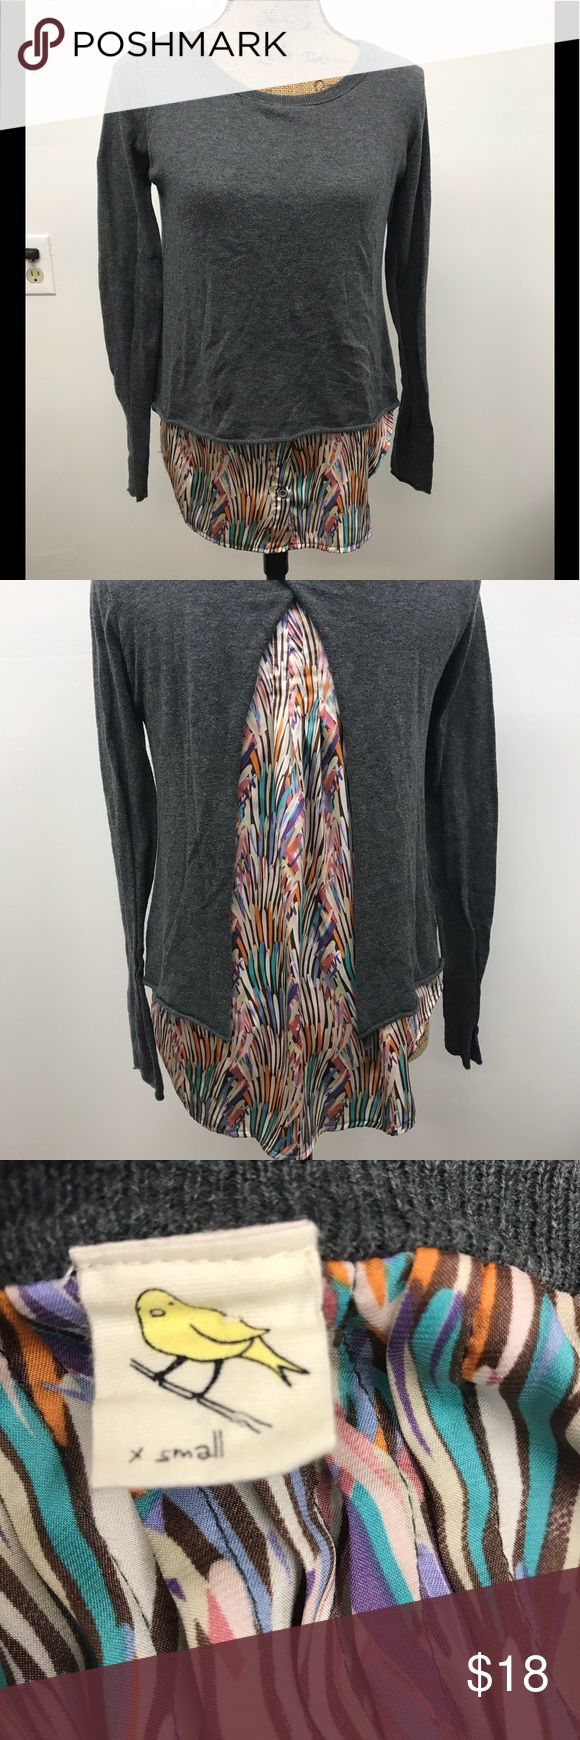 "Anthropologie sparrow top size xs Anthropologie sparrow size xs measurements are app laying flat armpit to armpit 19"" double for true fit length is 27"" sleeves is 24"" preworn condition no rips tears or stains Anthropologie Tops"